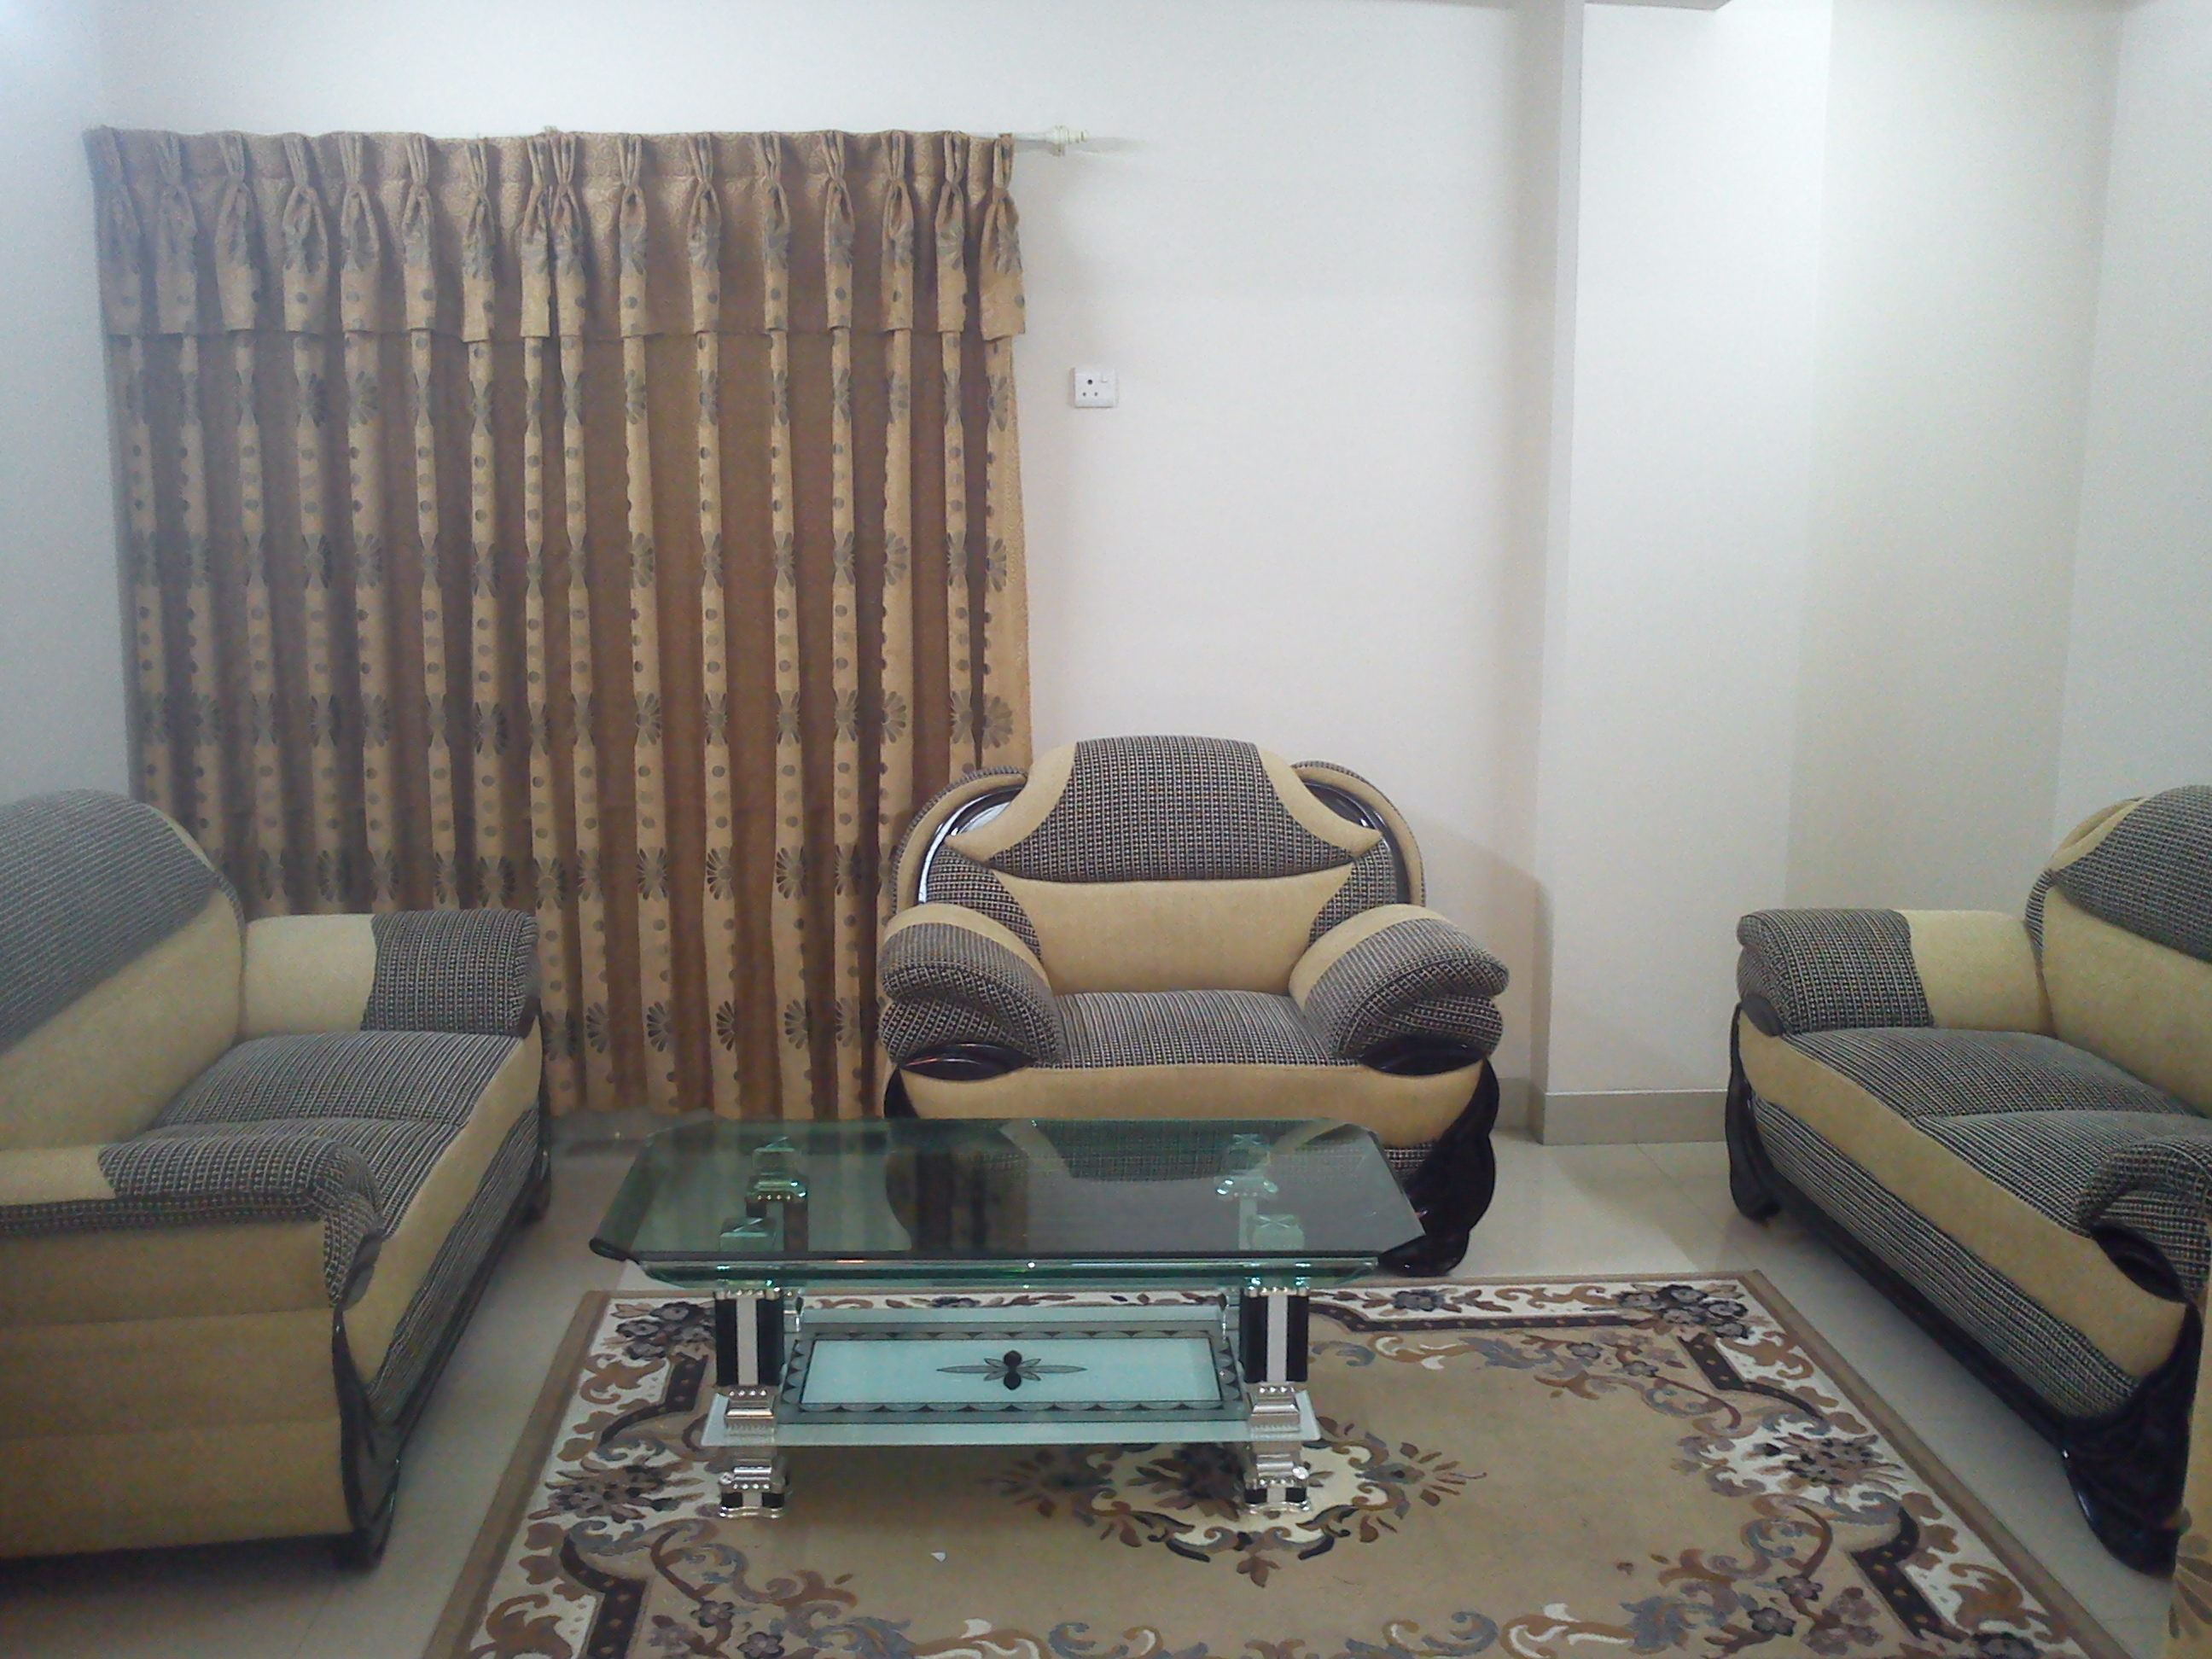 Fully Furnished Apartment for rent at Dhanmondi 1800 Sq  : 50fa6image1 from www.vistahomesbd.com size 2592 x 1944 jpeg 663kB